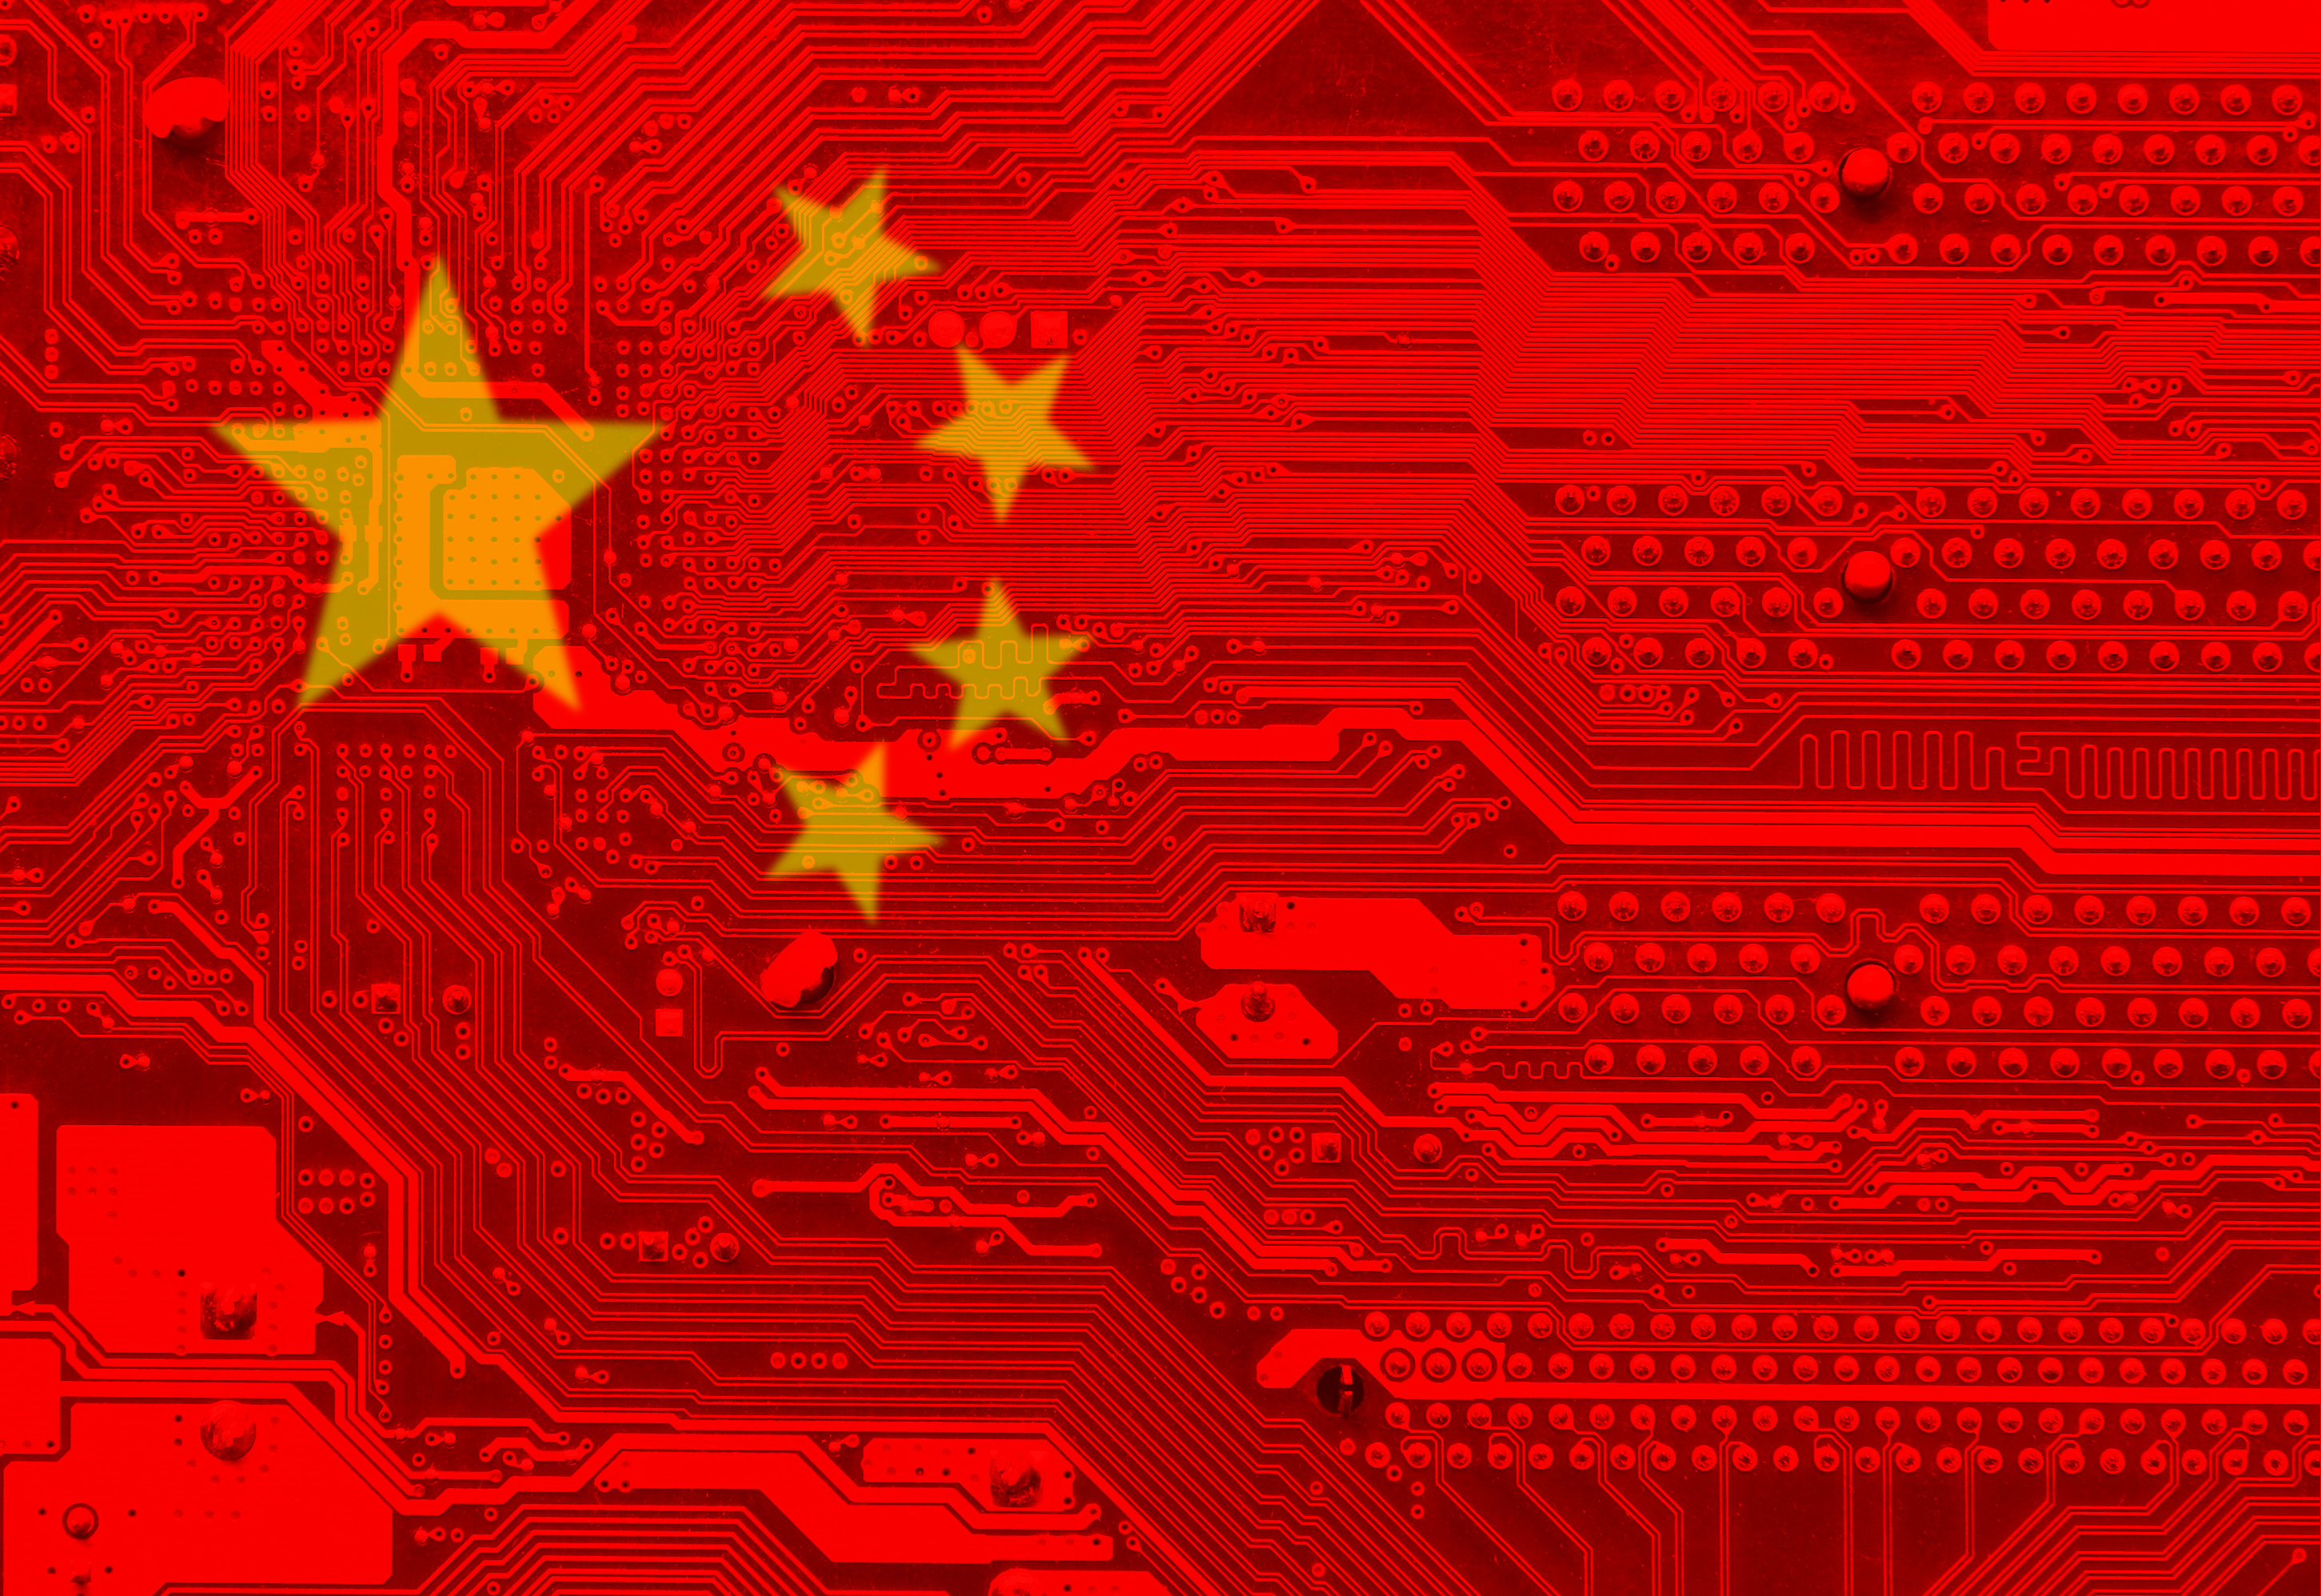 Chine digitale, dragon hacker de puissance